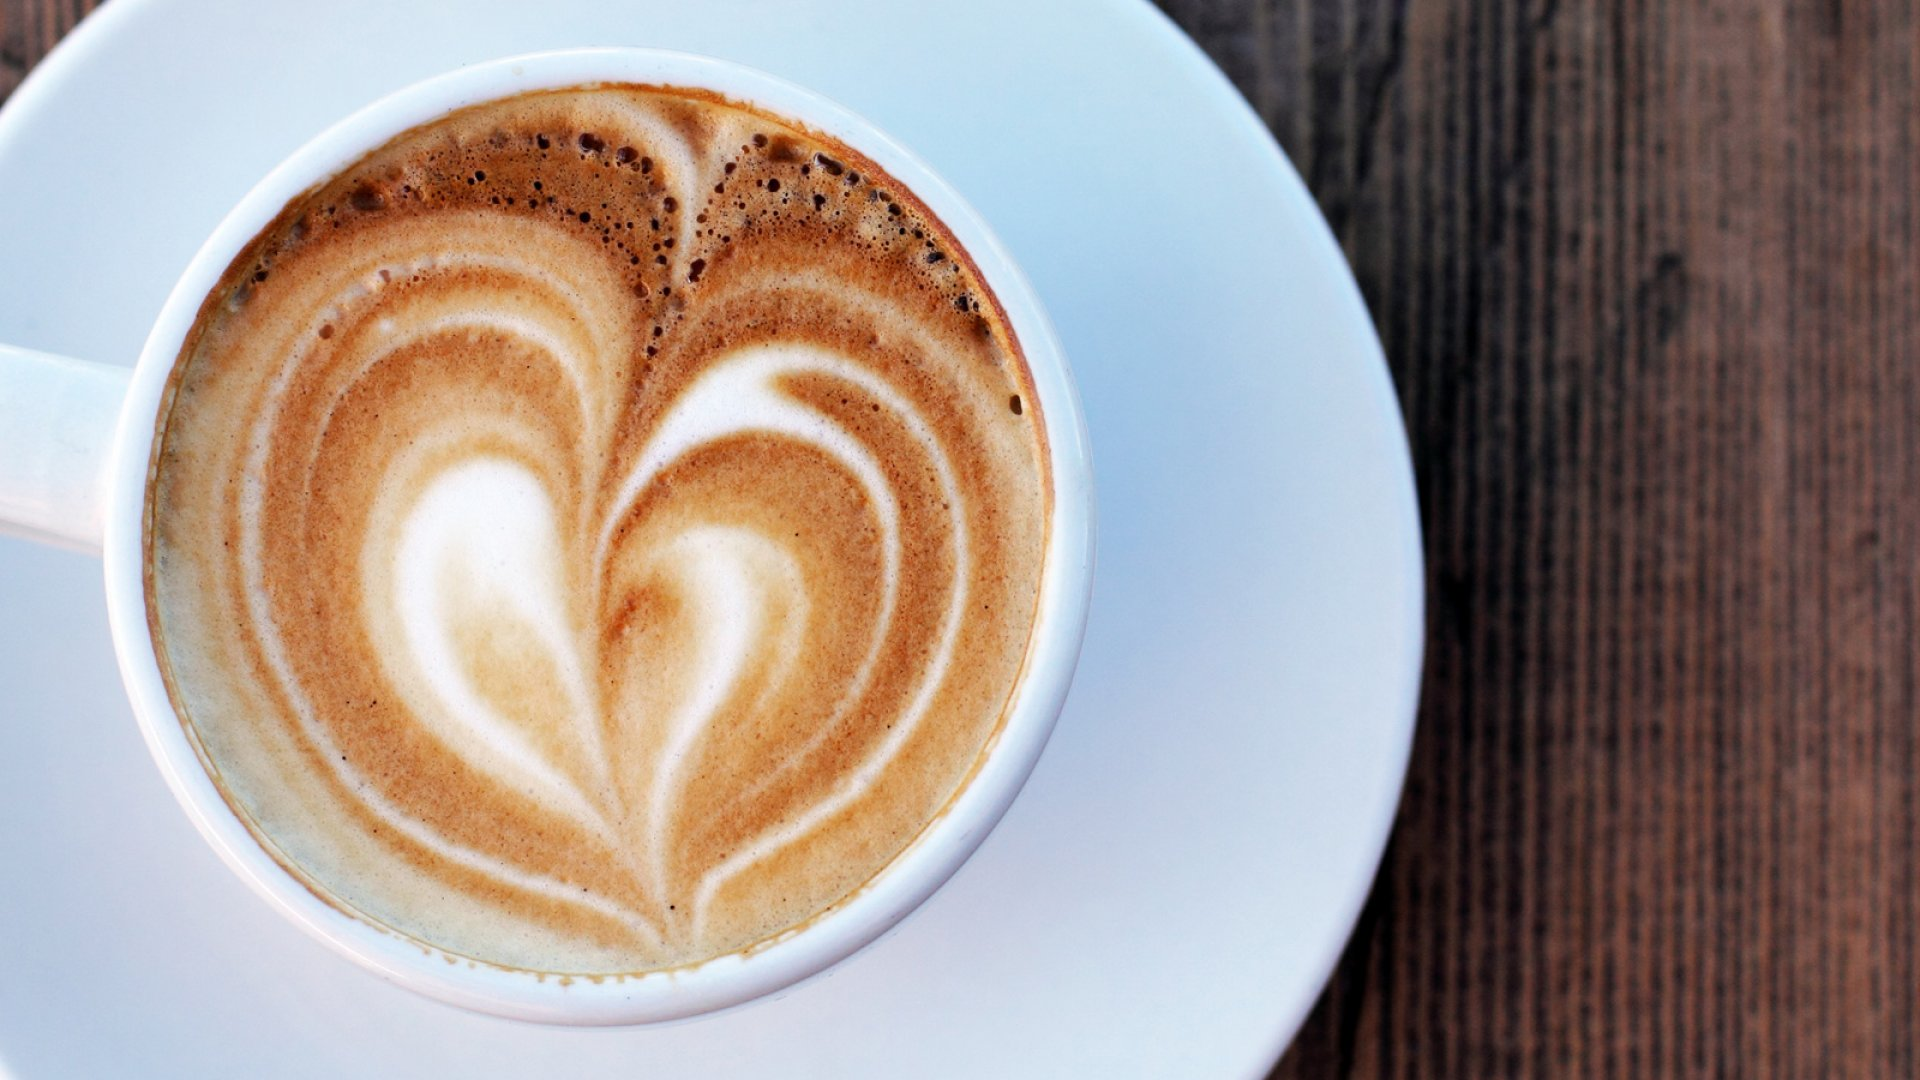 Forget What You've Heard: Coffee Is (Actually) Good for You